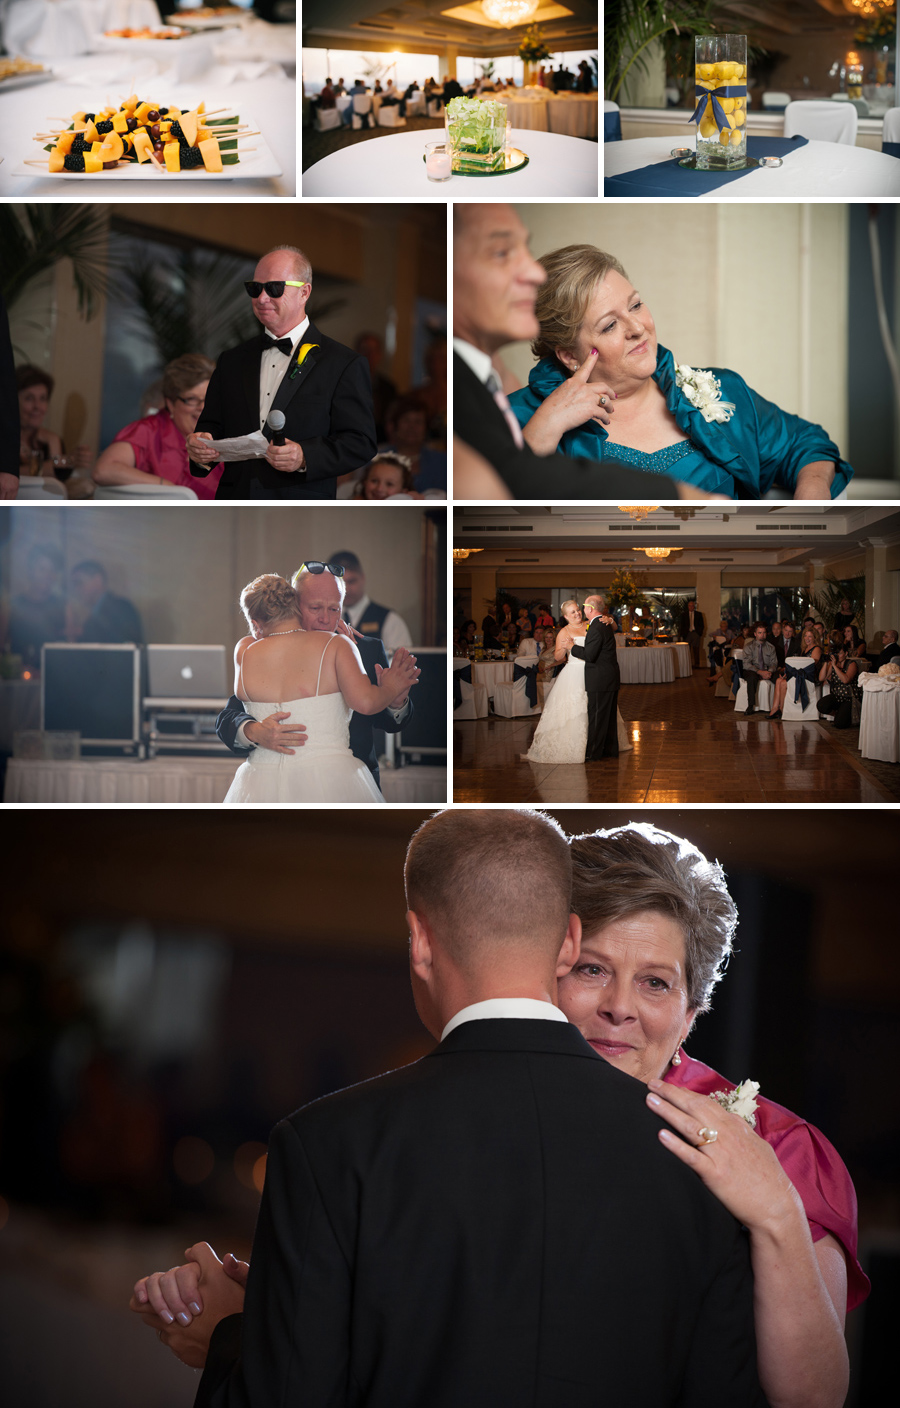 Bess and Tyler wedding reception at the Capital City Club Downtown Columbia, SC